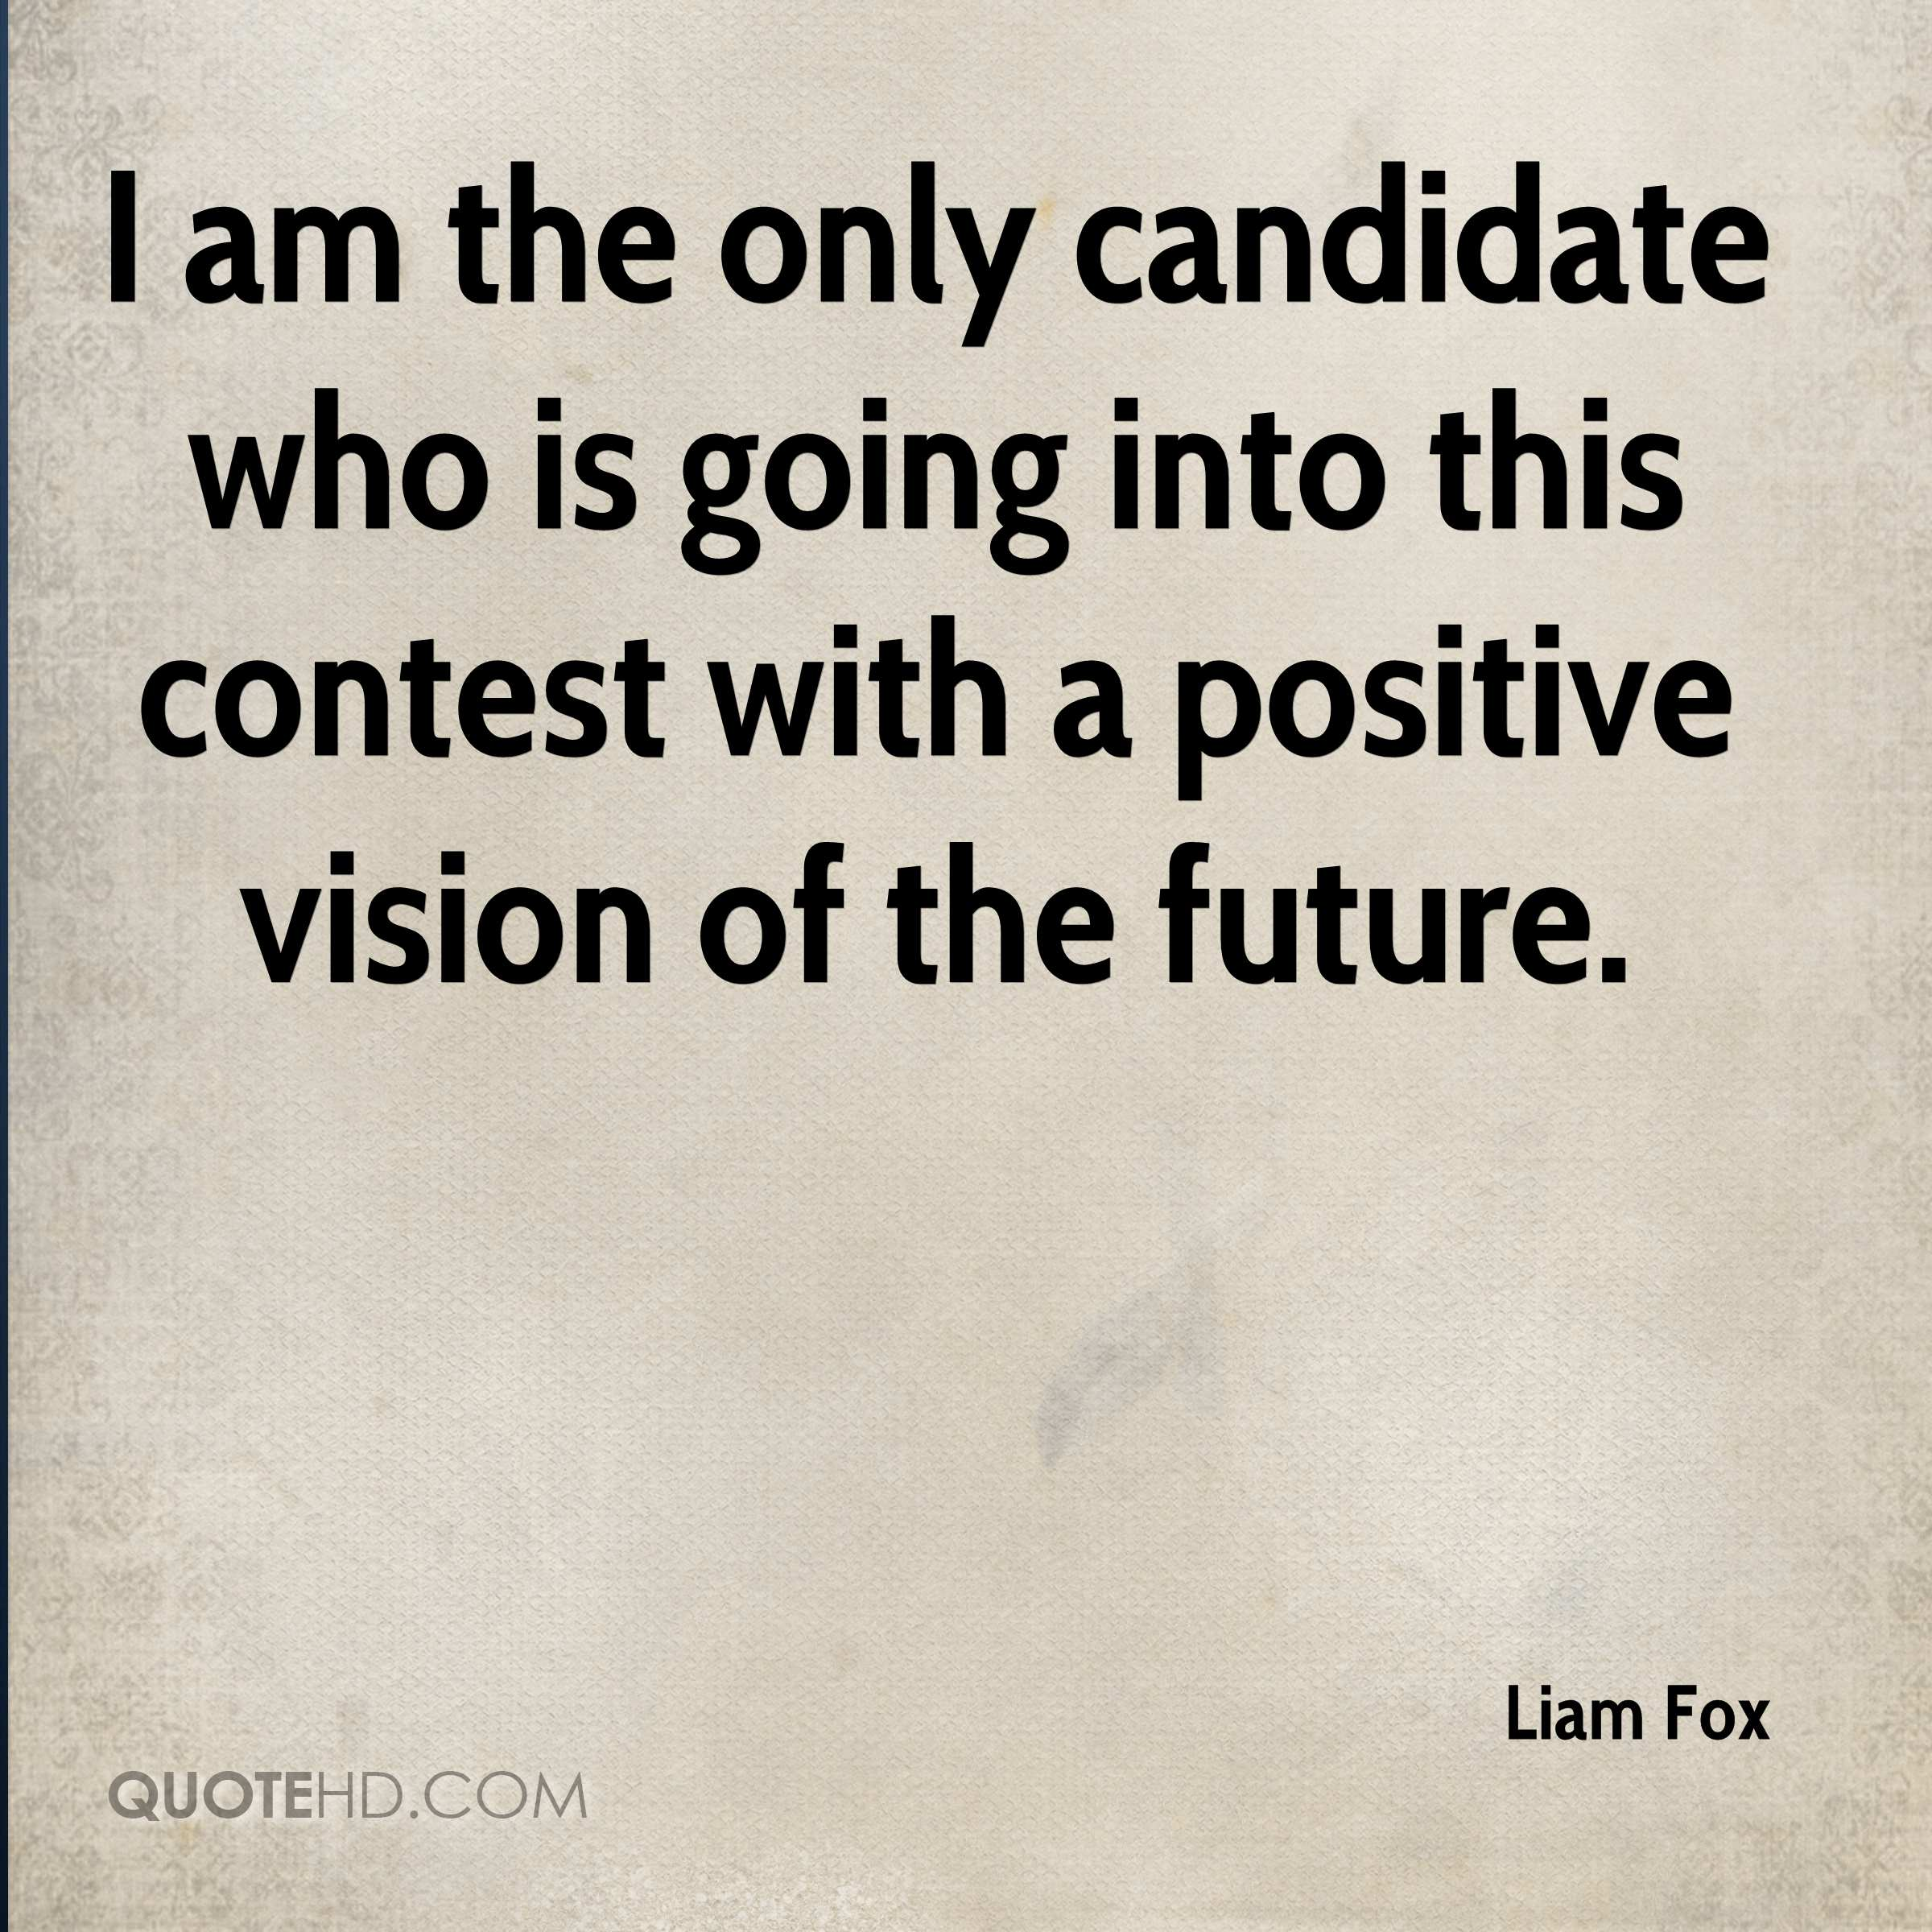 I am the only candidate who is going into this contest with a positive vision of the future.